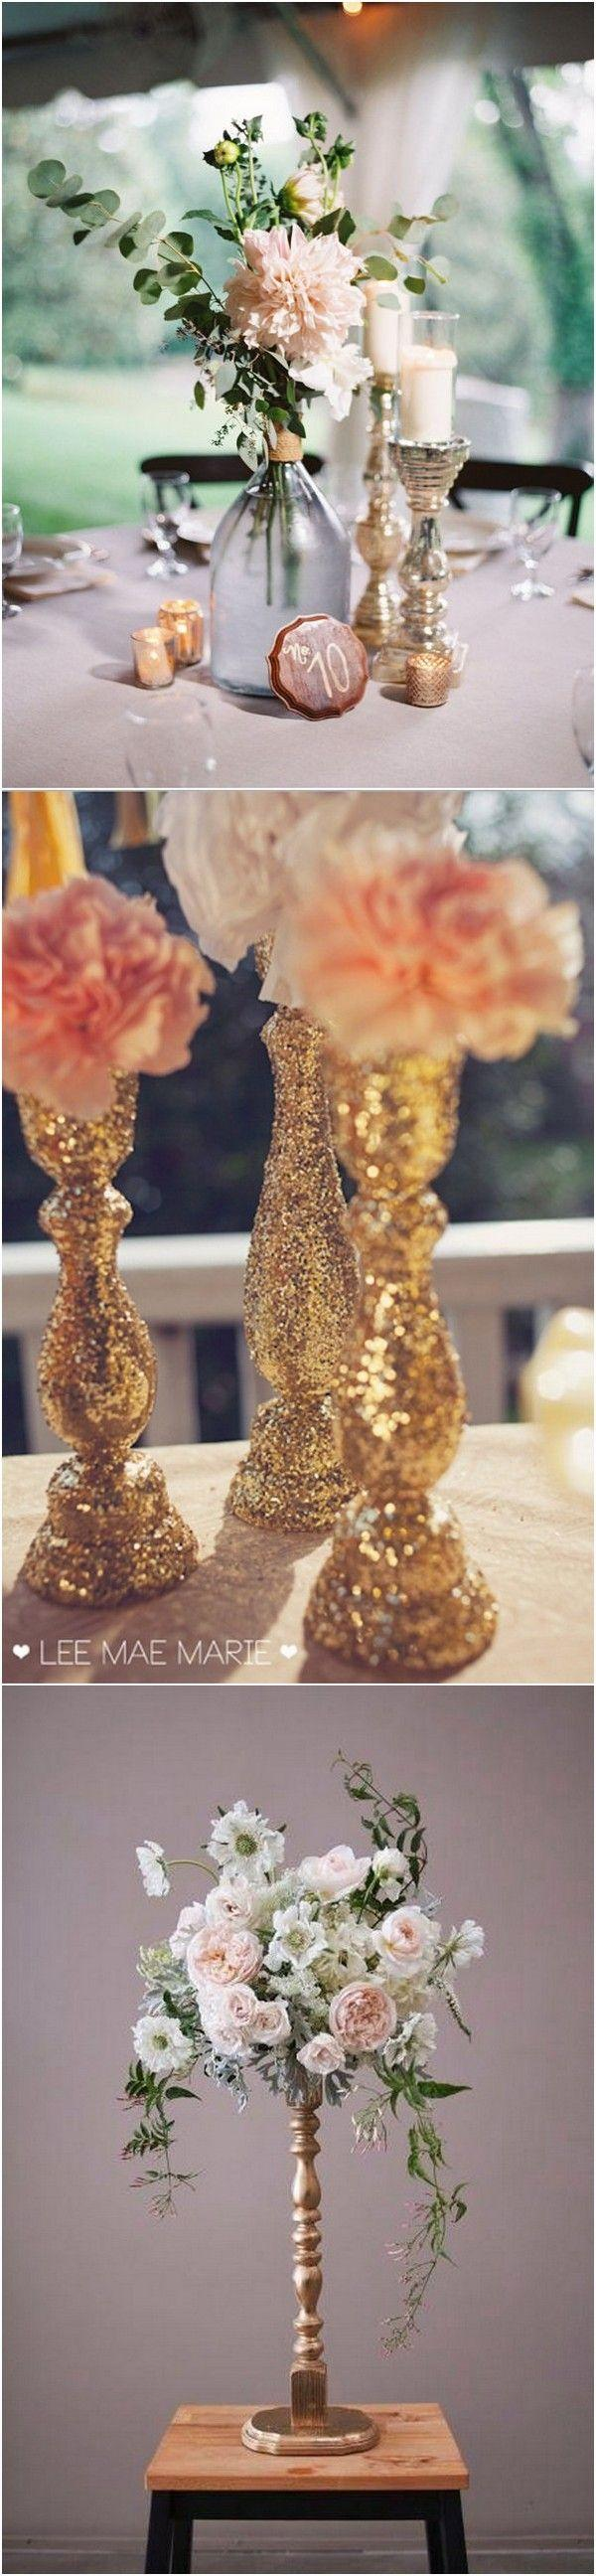 Boda - Trending-18 Outstanding Wedding Centerpieces With Candlesticks - Page 2 Of 3